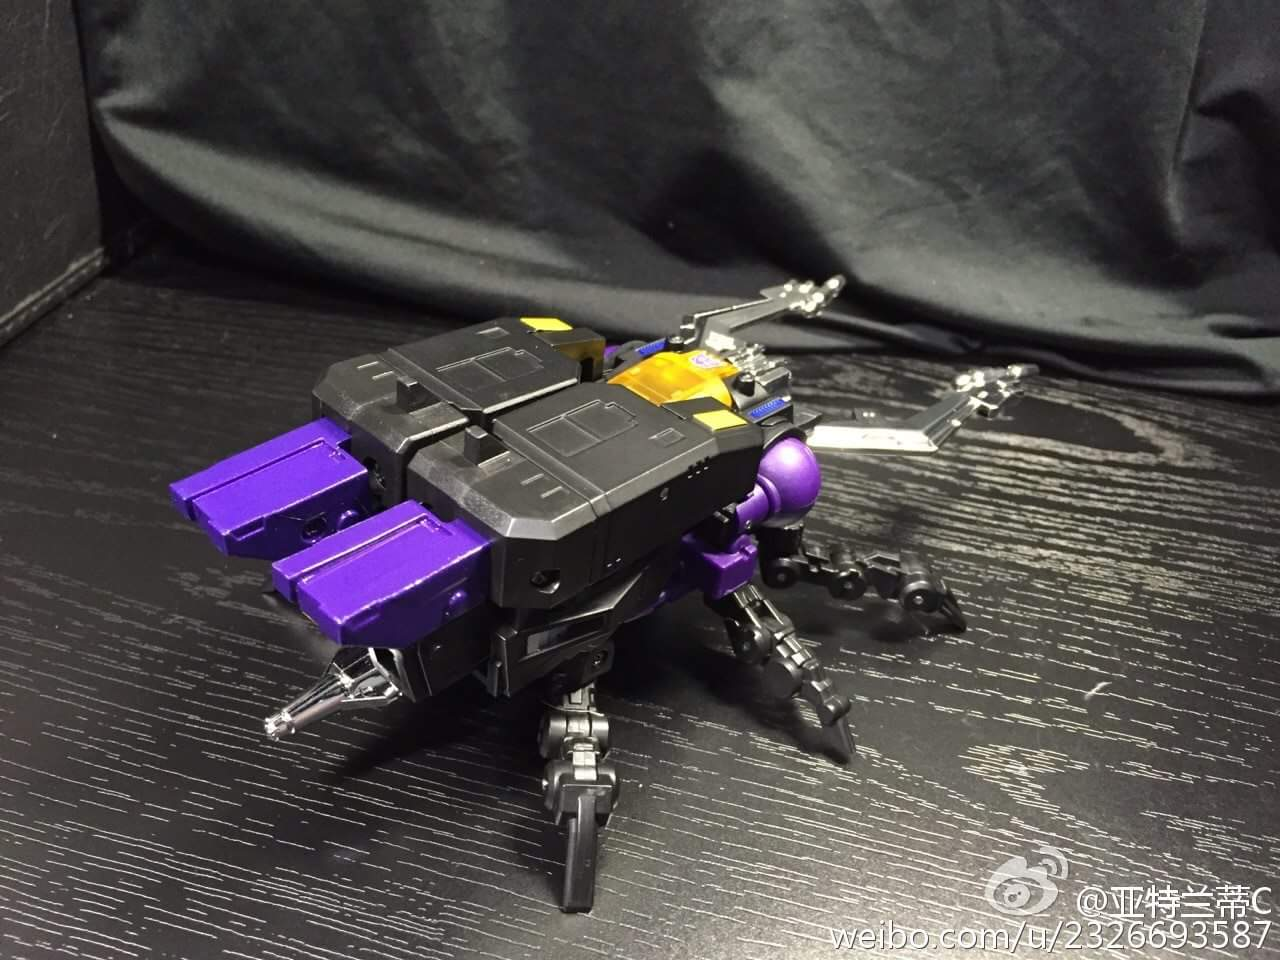 [Fanstoys] Produit Tiers - Jouet FT-12 Grenadier / FT-13 Mercenary / FT-14 Forager - aka Insecticons - Page 3 BugipCK6